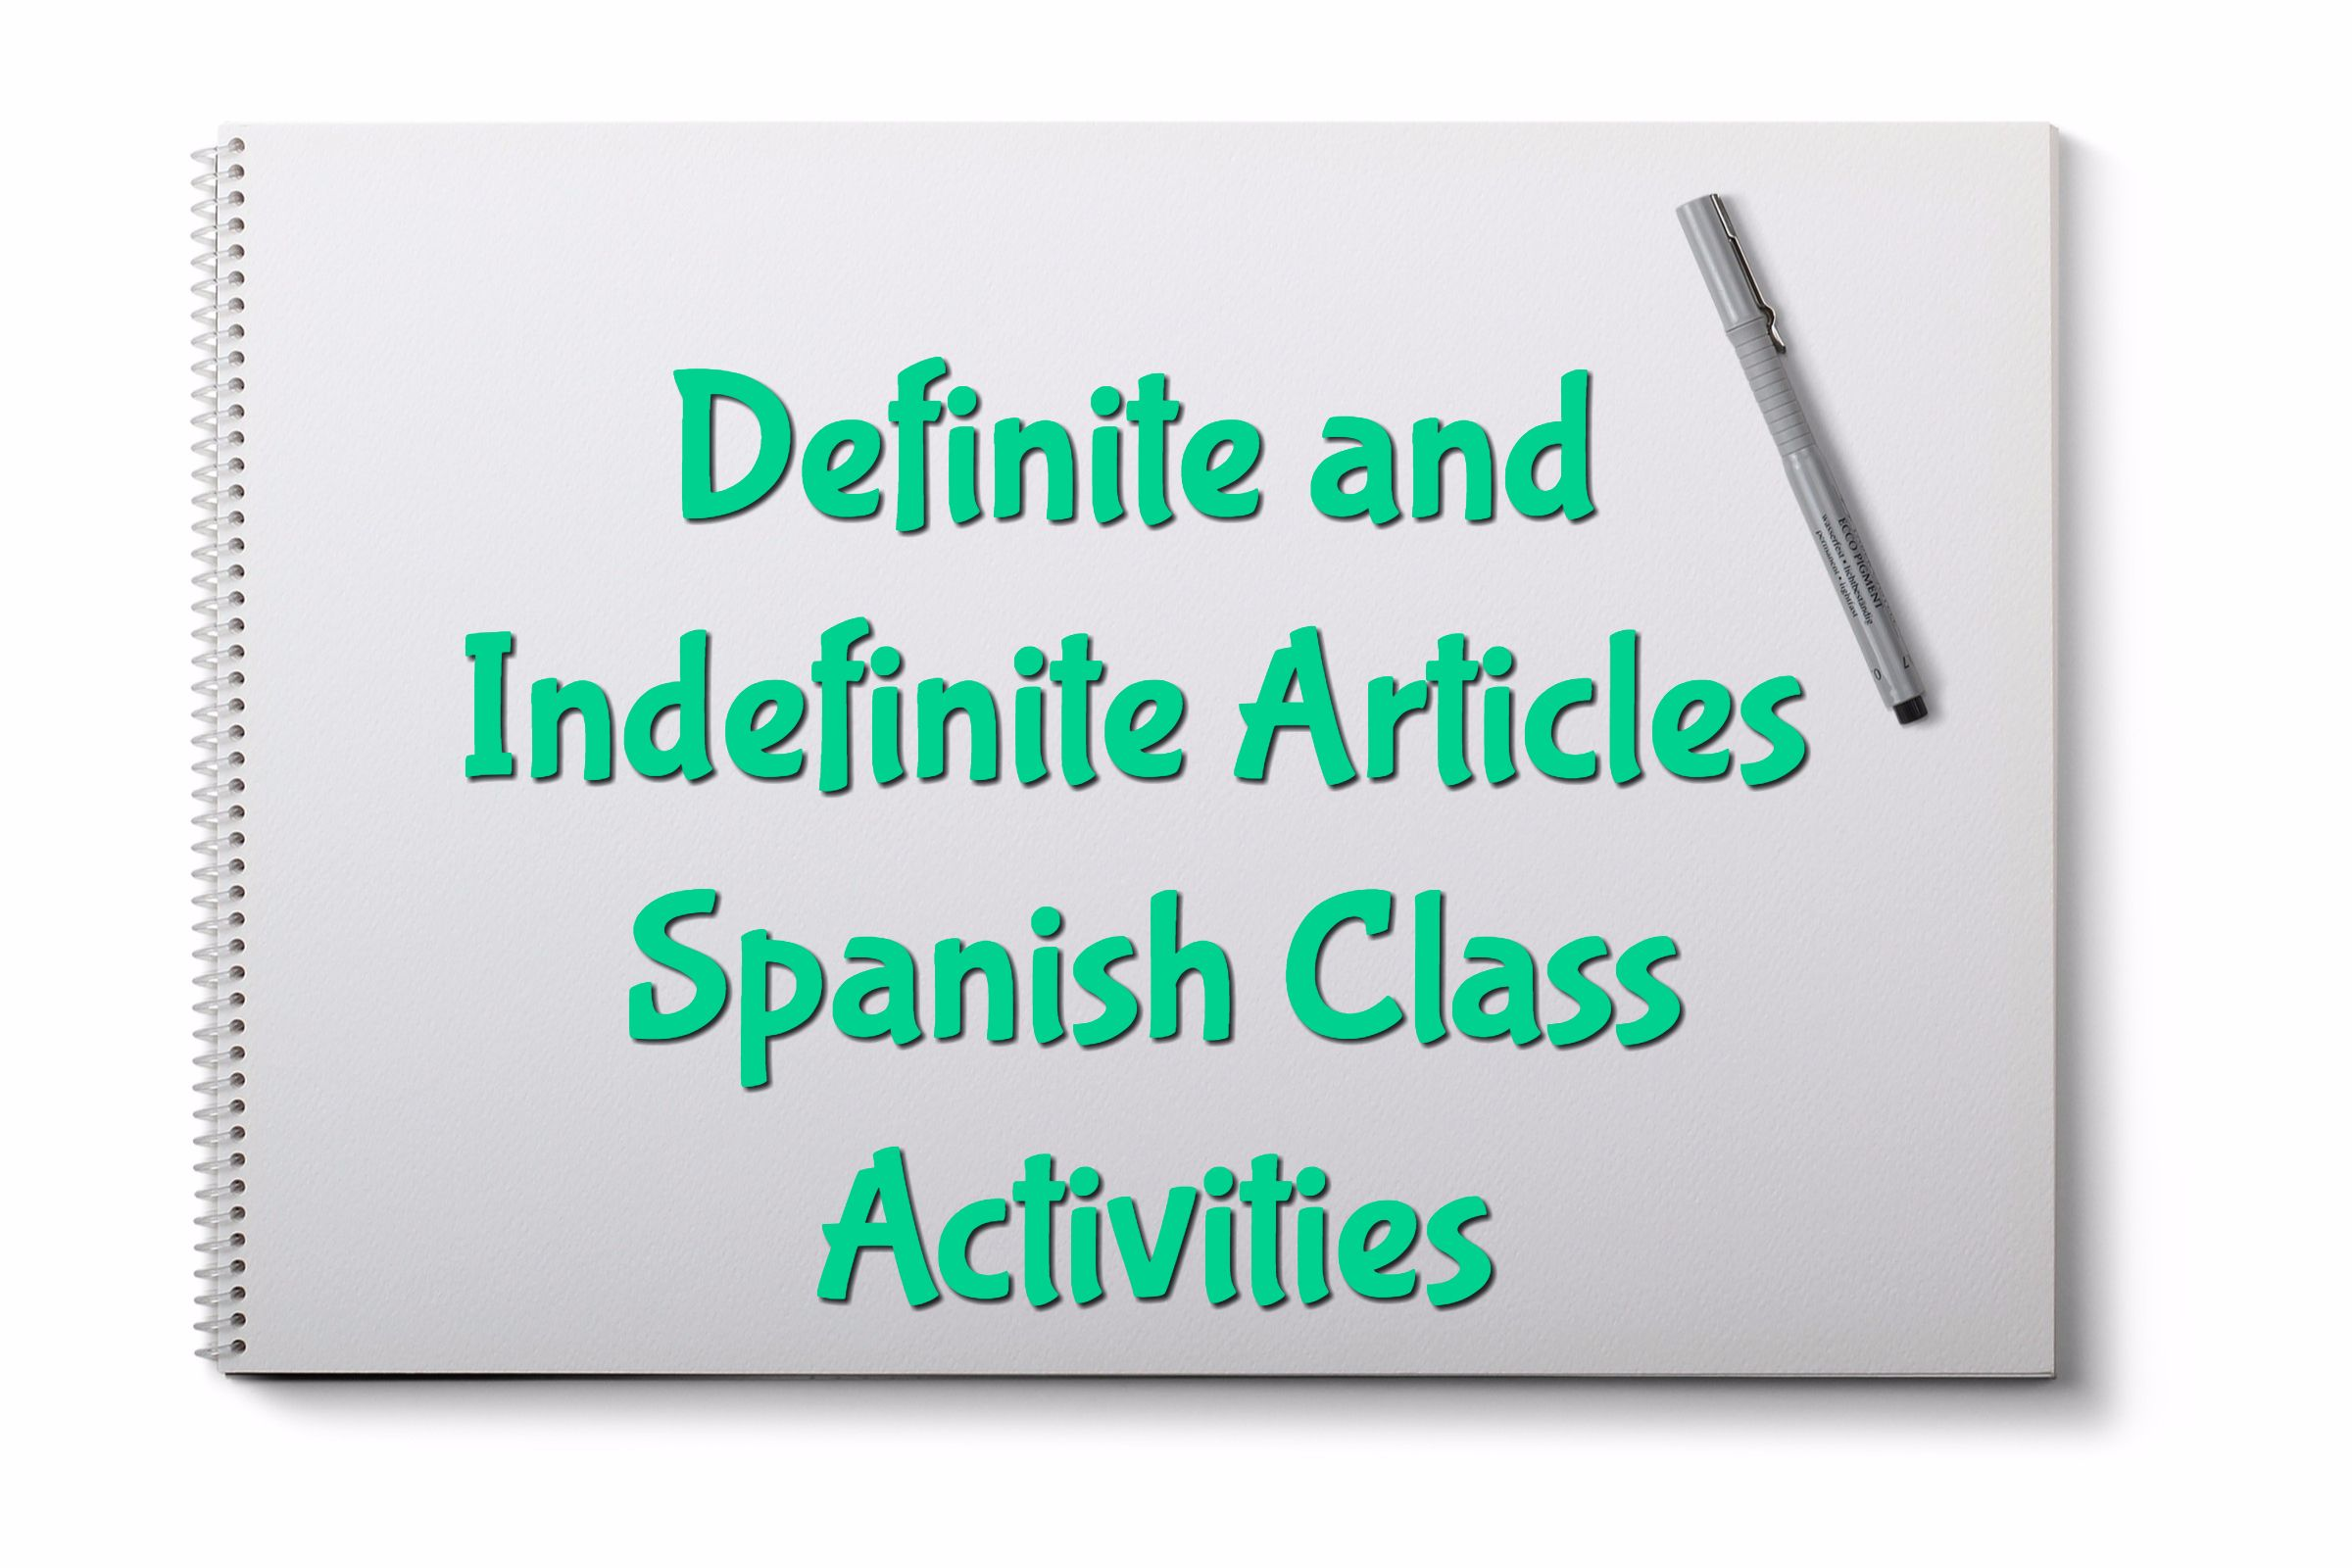 Definite And Indefinite Articles Spanish Class Activities